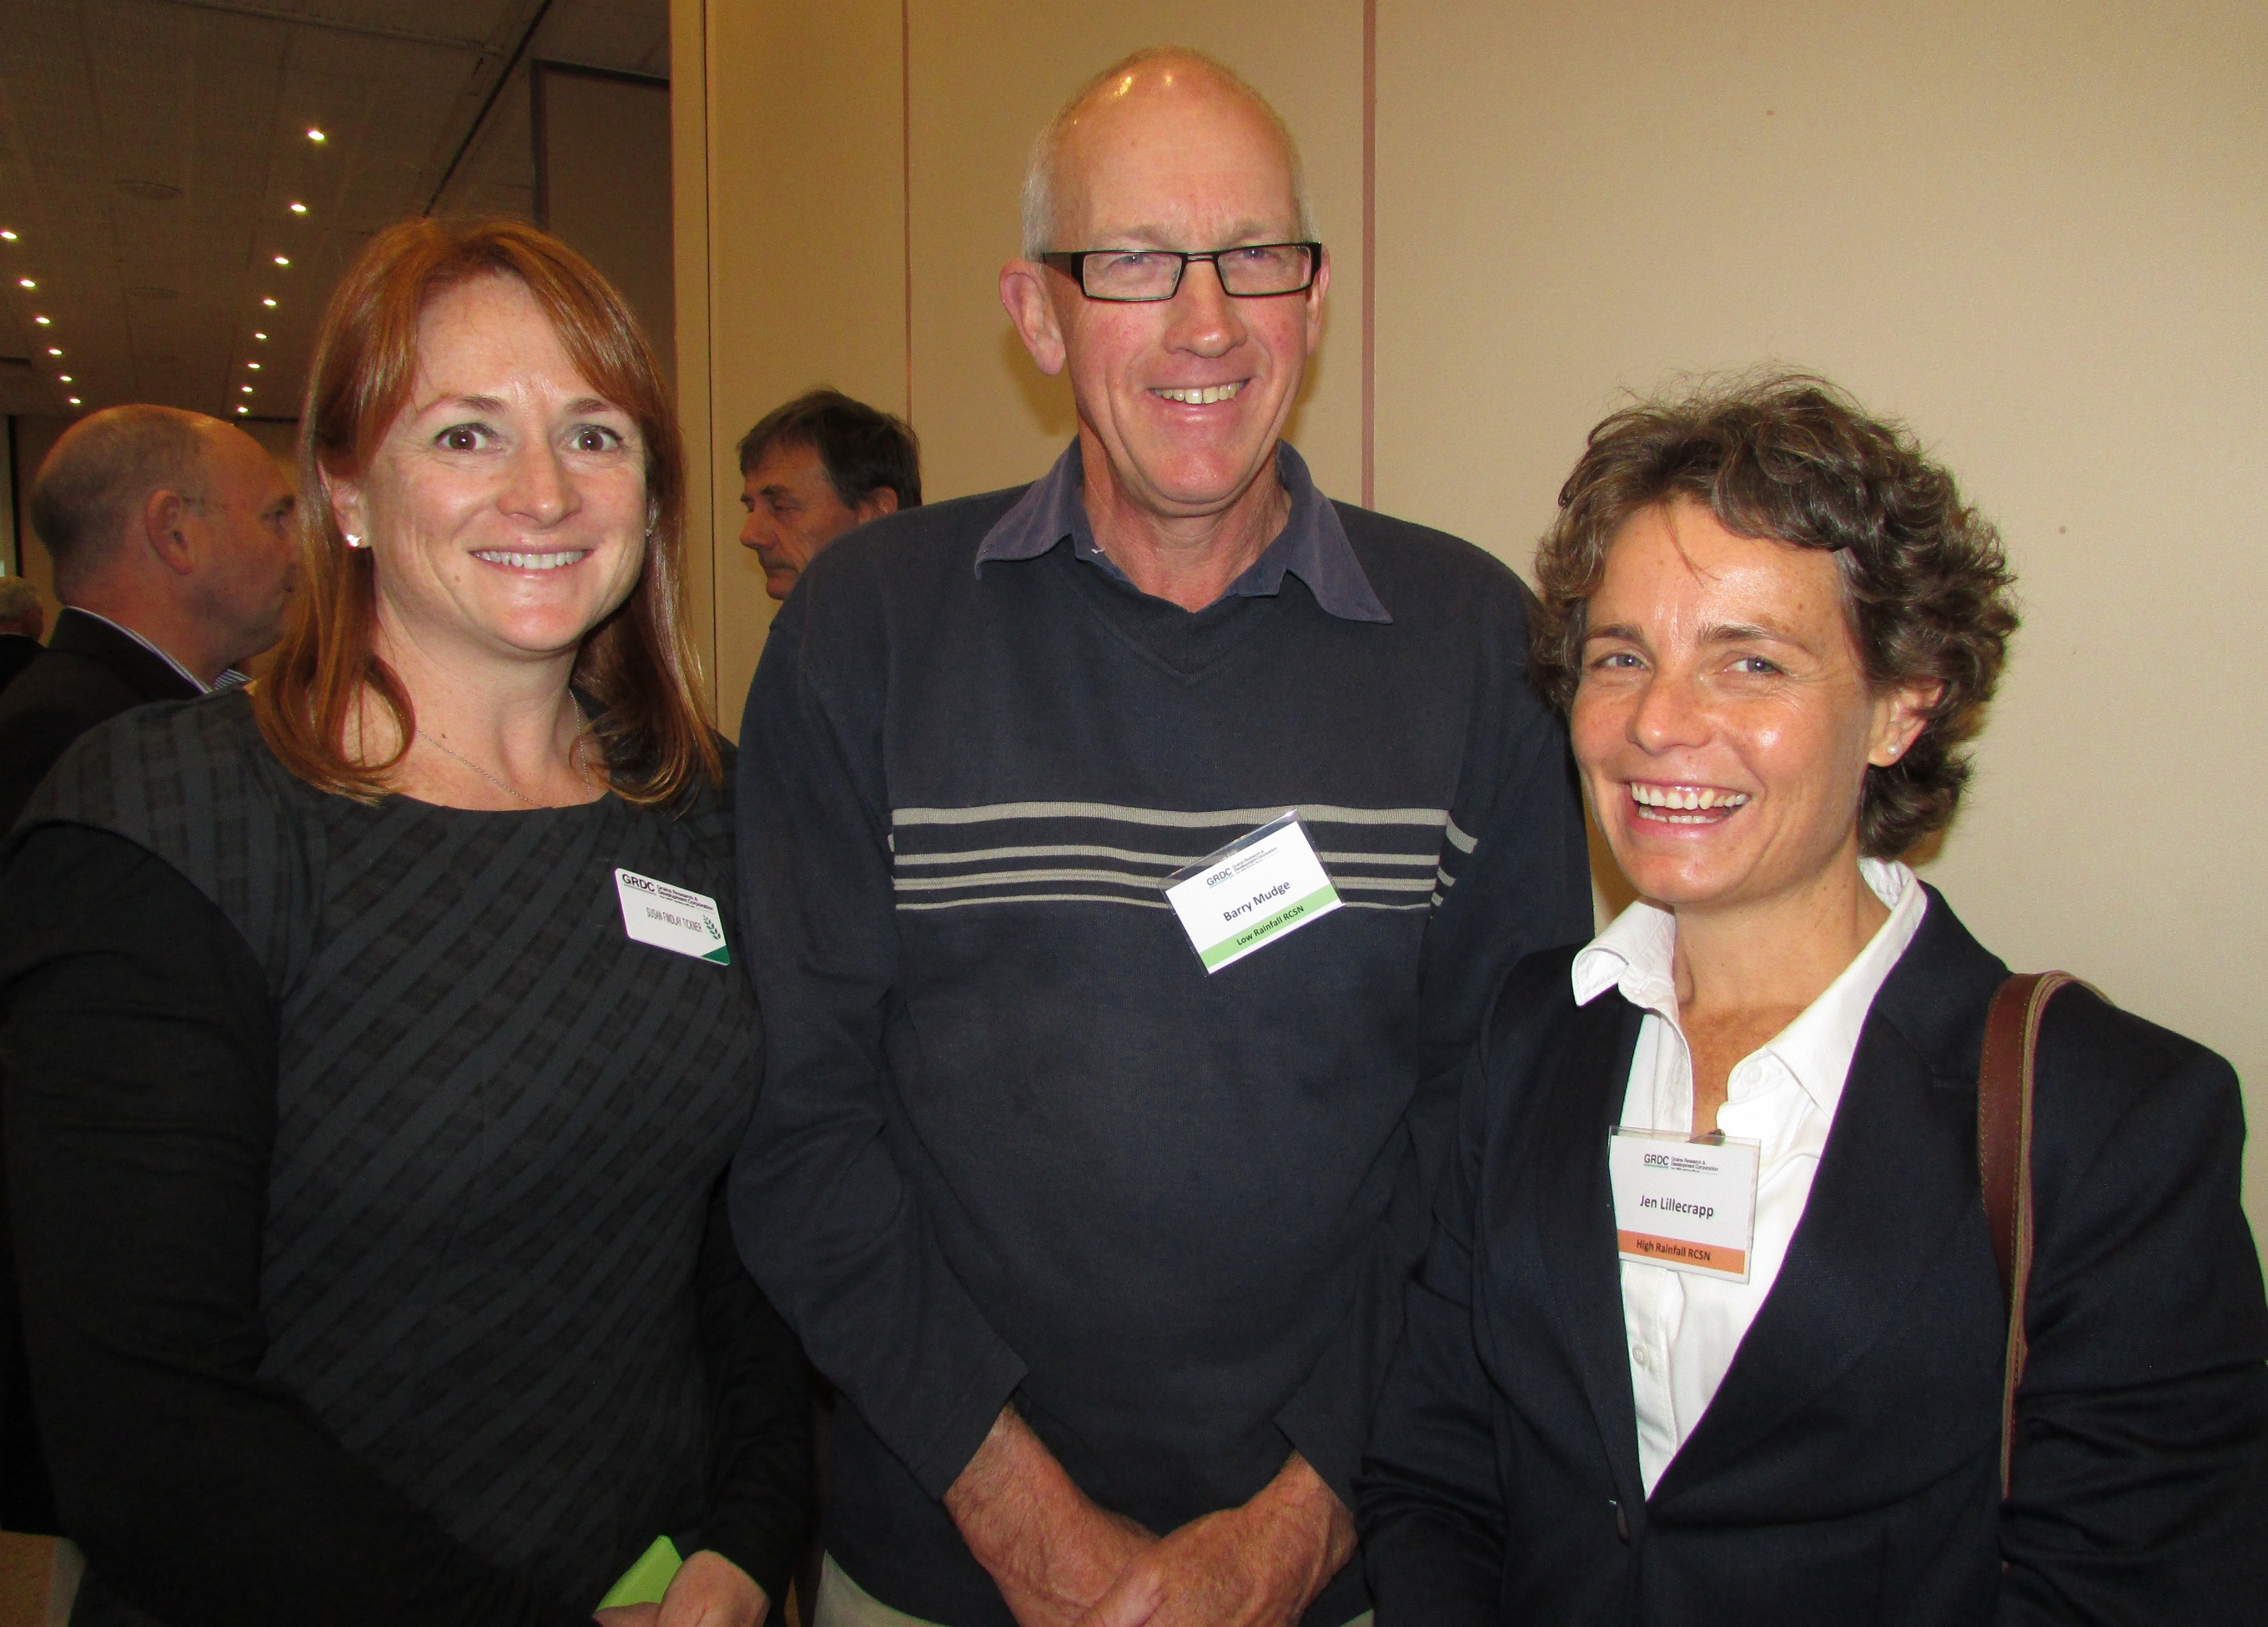 At a combined meeting of the RCSNs in 2014 were GRDC Southern Regional Panel member Susan Findlay Tickner (left) of Horsham (Victoria); low rainfall zone RCSN member Barry Mudge, Port Germein (SA); and Jen Lillecrapp of Struan (SA), who is a co-facilitator for both the HRZ and MRZ networks.